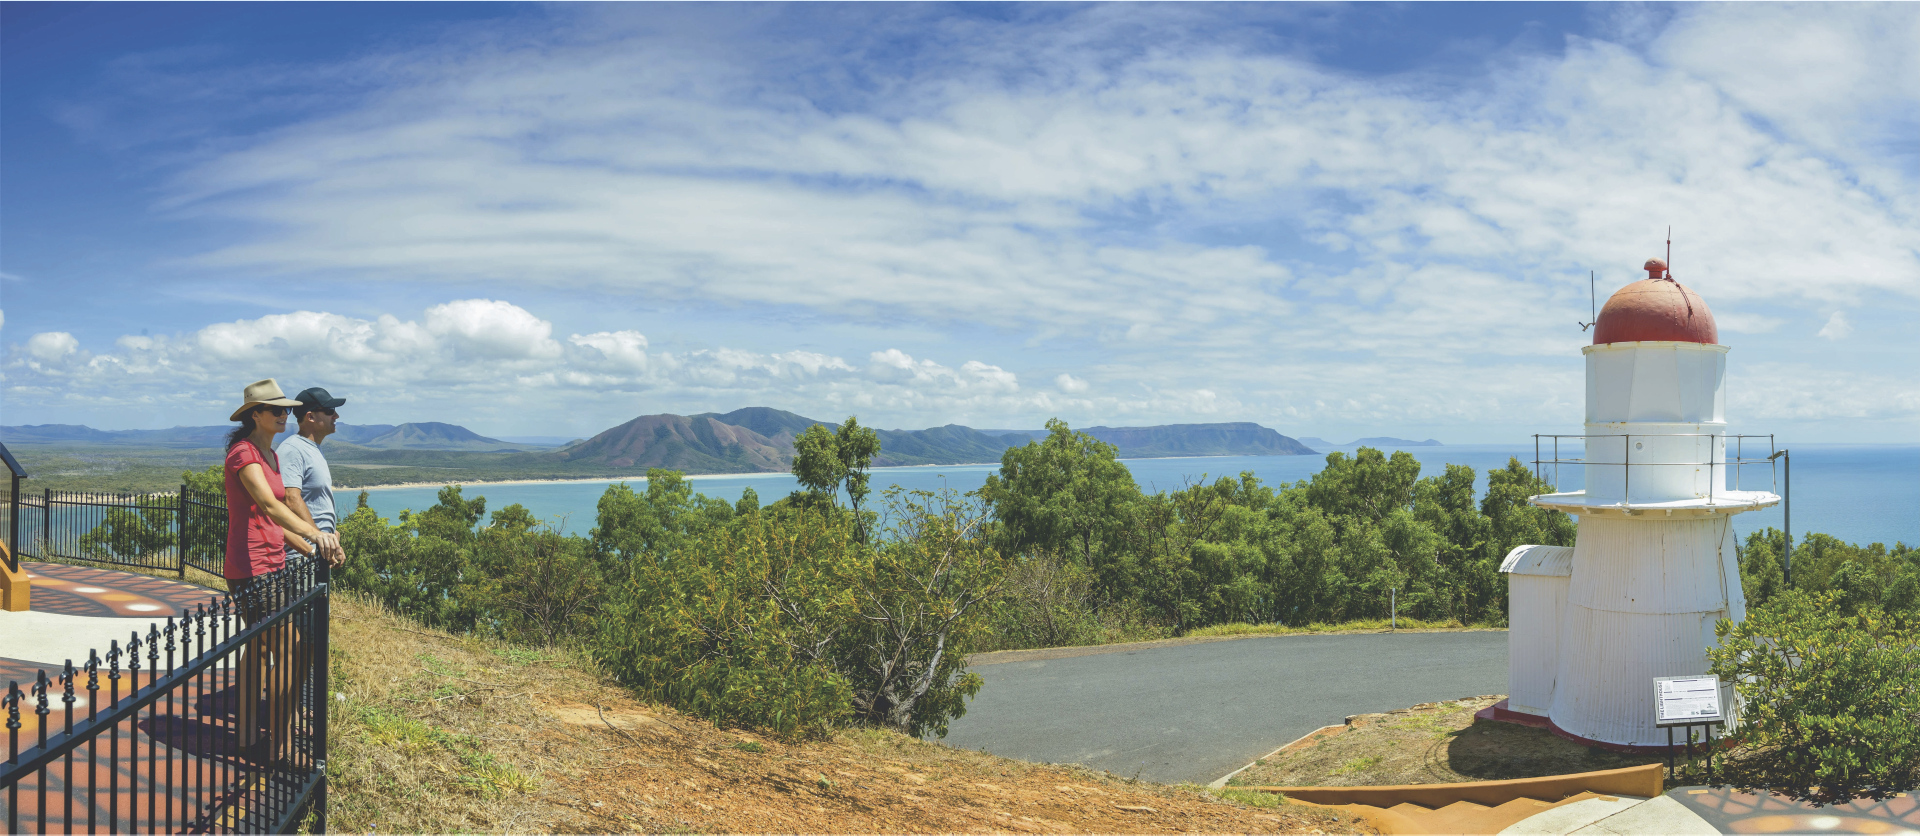 Aussichtspunkt in Cooktown